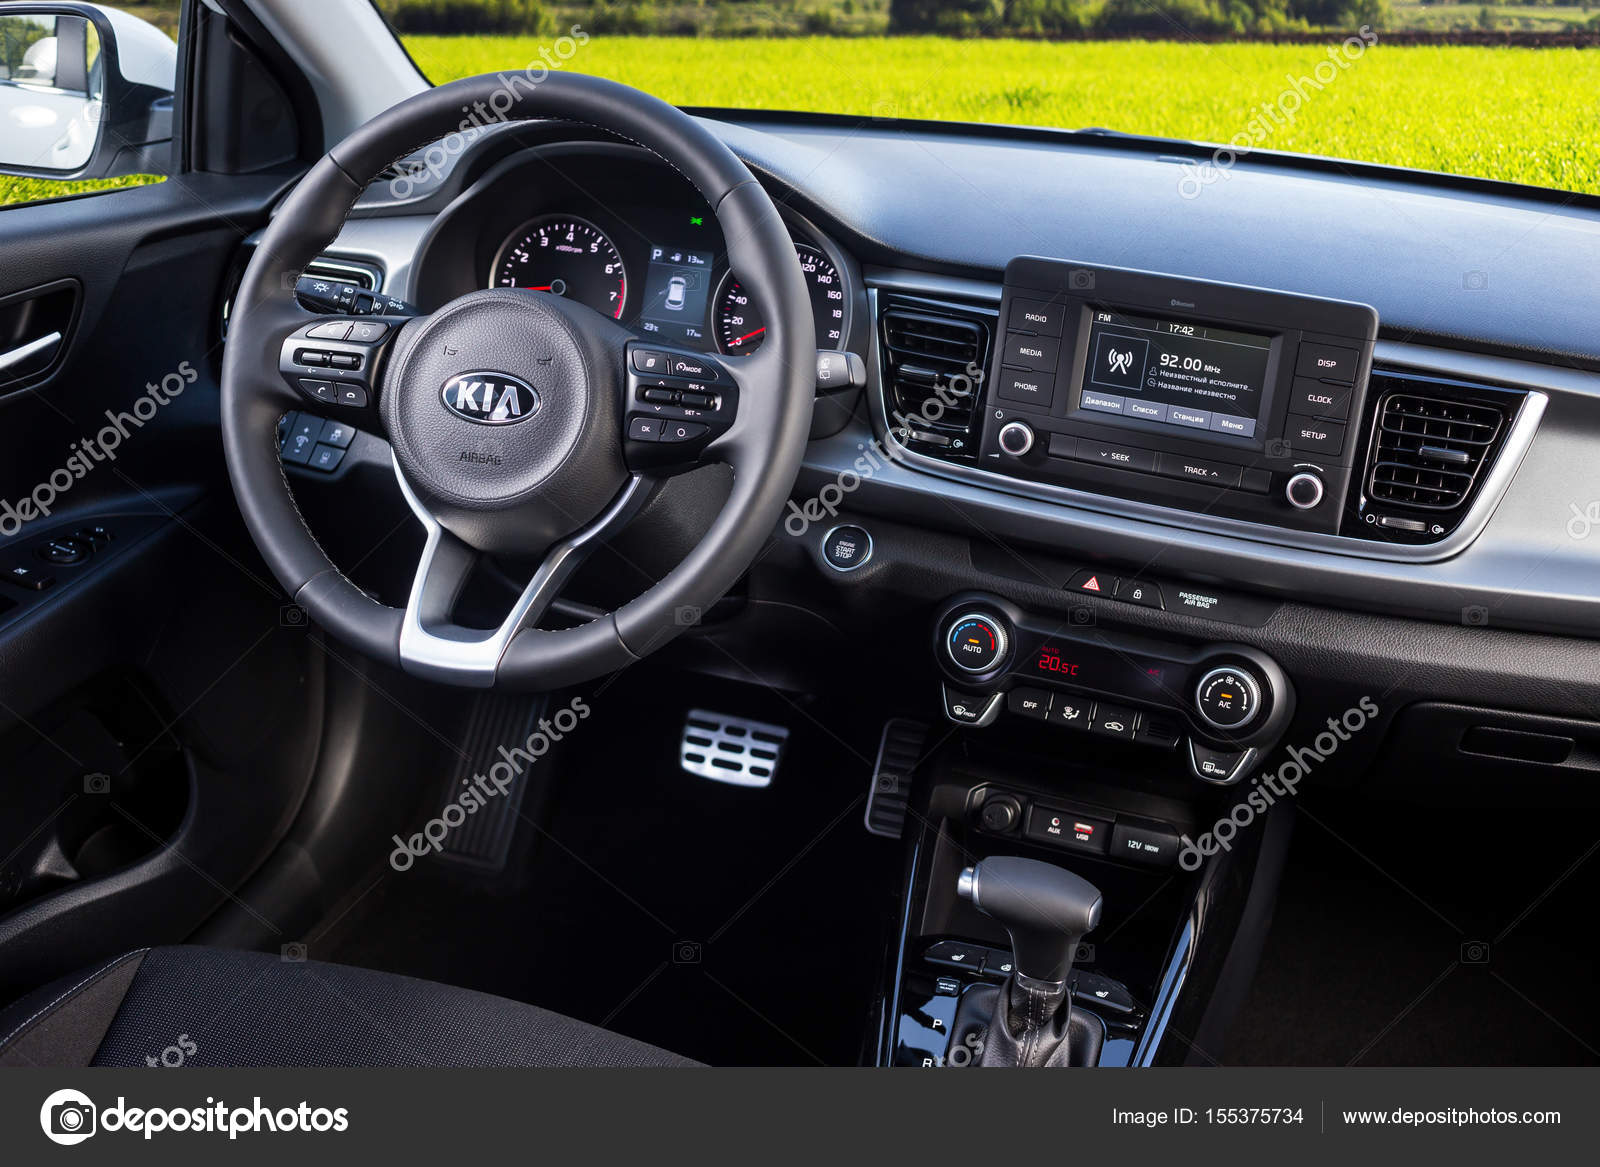 Vinnitsa Ukraine May 19 2017 Kia Rio Concept Car Inside The Car